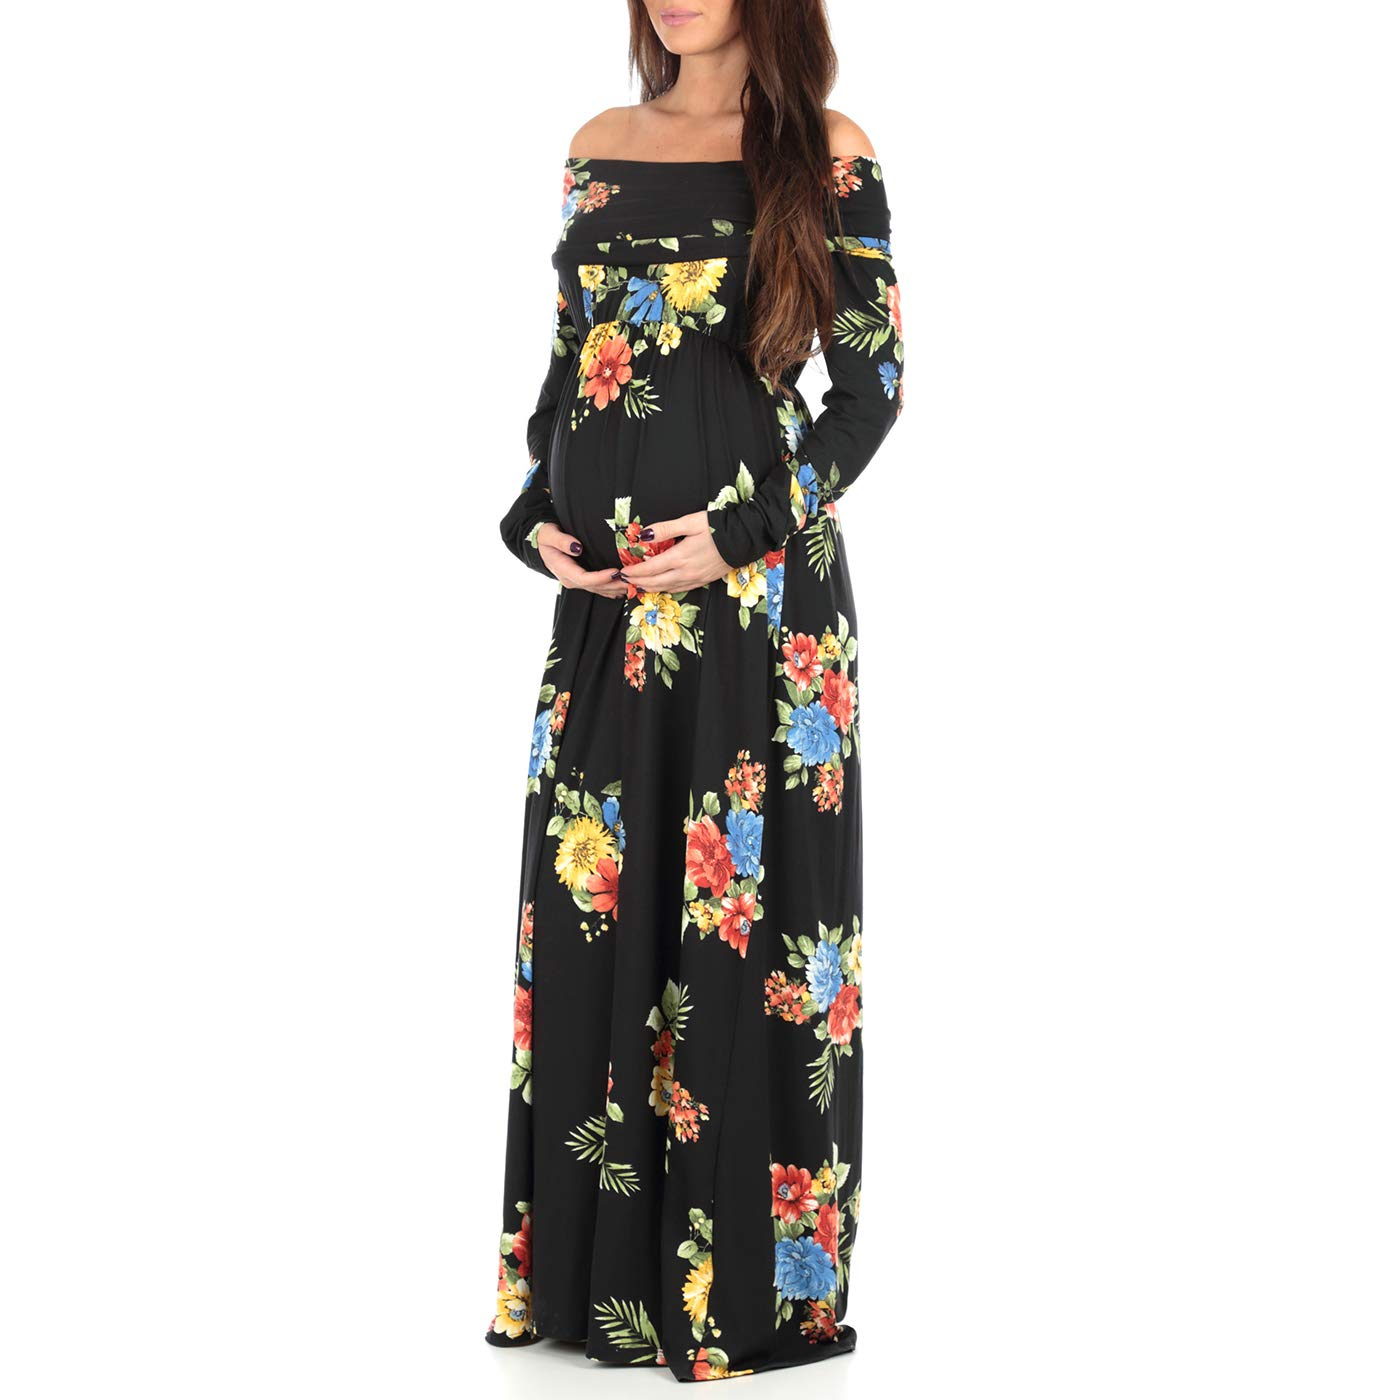 7b9073437f2f1 Women's Floral Over The Shoulder Ruched Maternity and Nursing Dress by  Mother Bee - Made in USA at Amazon Women's Clothing store: